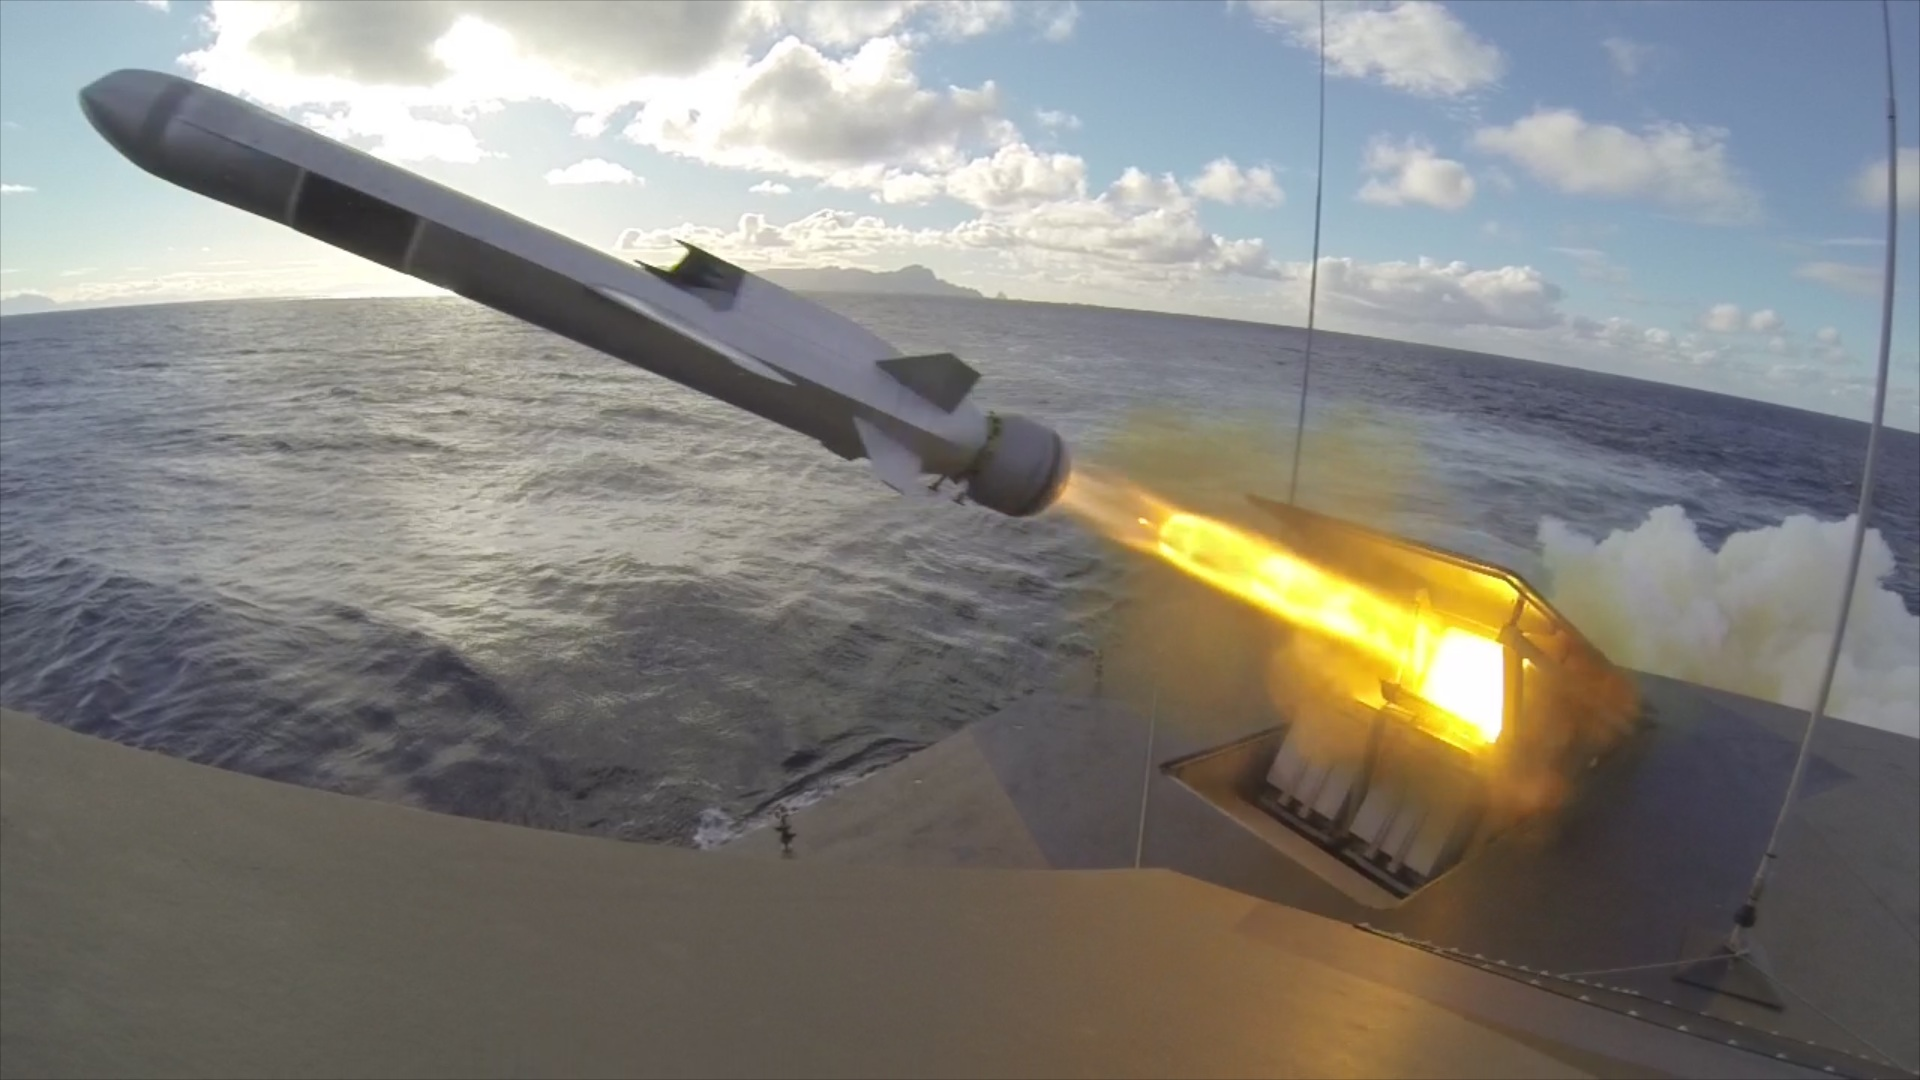 Skaprskyting med NSM fra korvetten KNM Gnist utenfor Andøya / Live fireing with NSM missile from corvette HNoMS Gnist outside Andøya in Northern-Norway